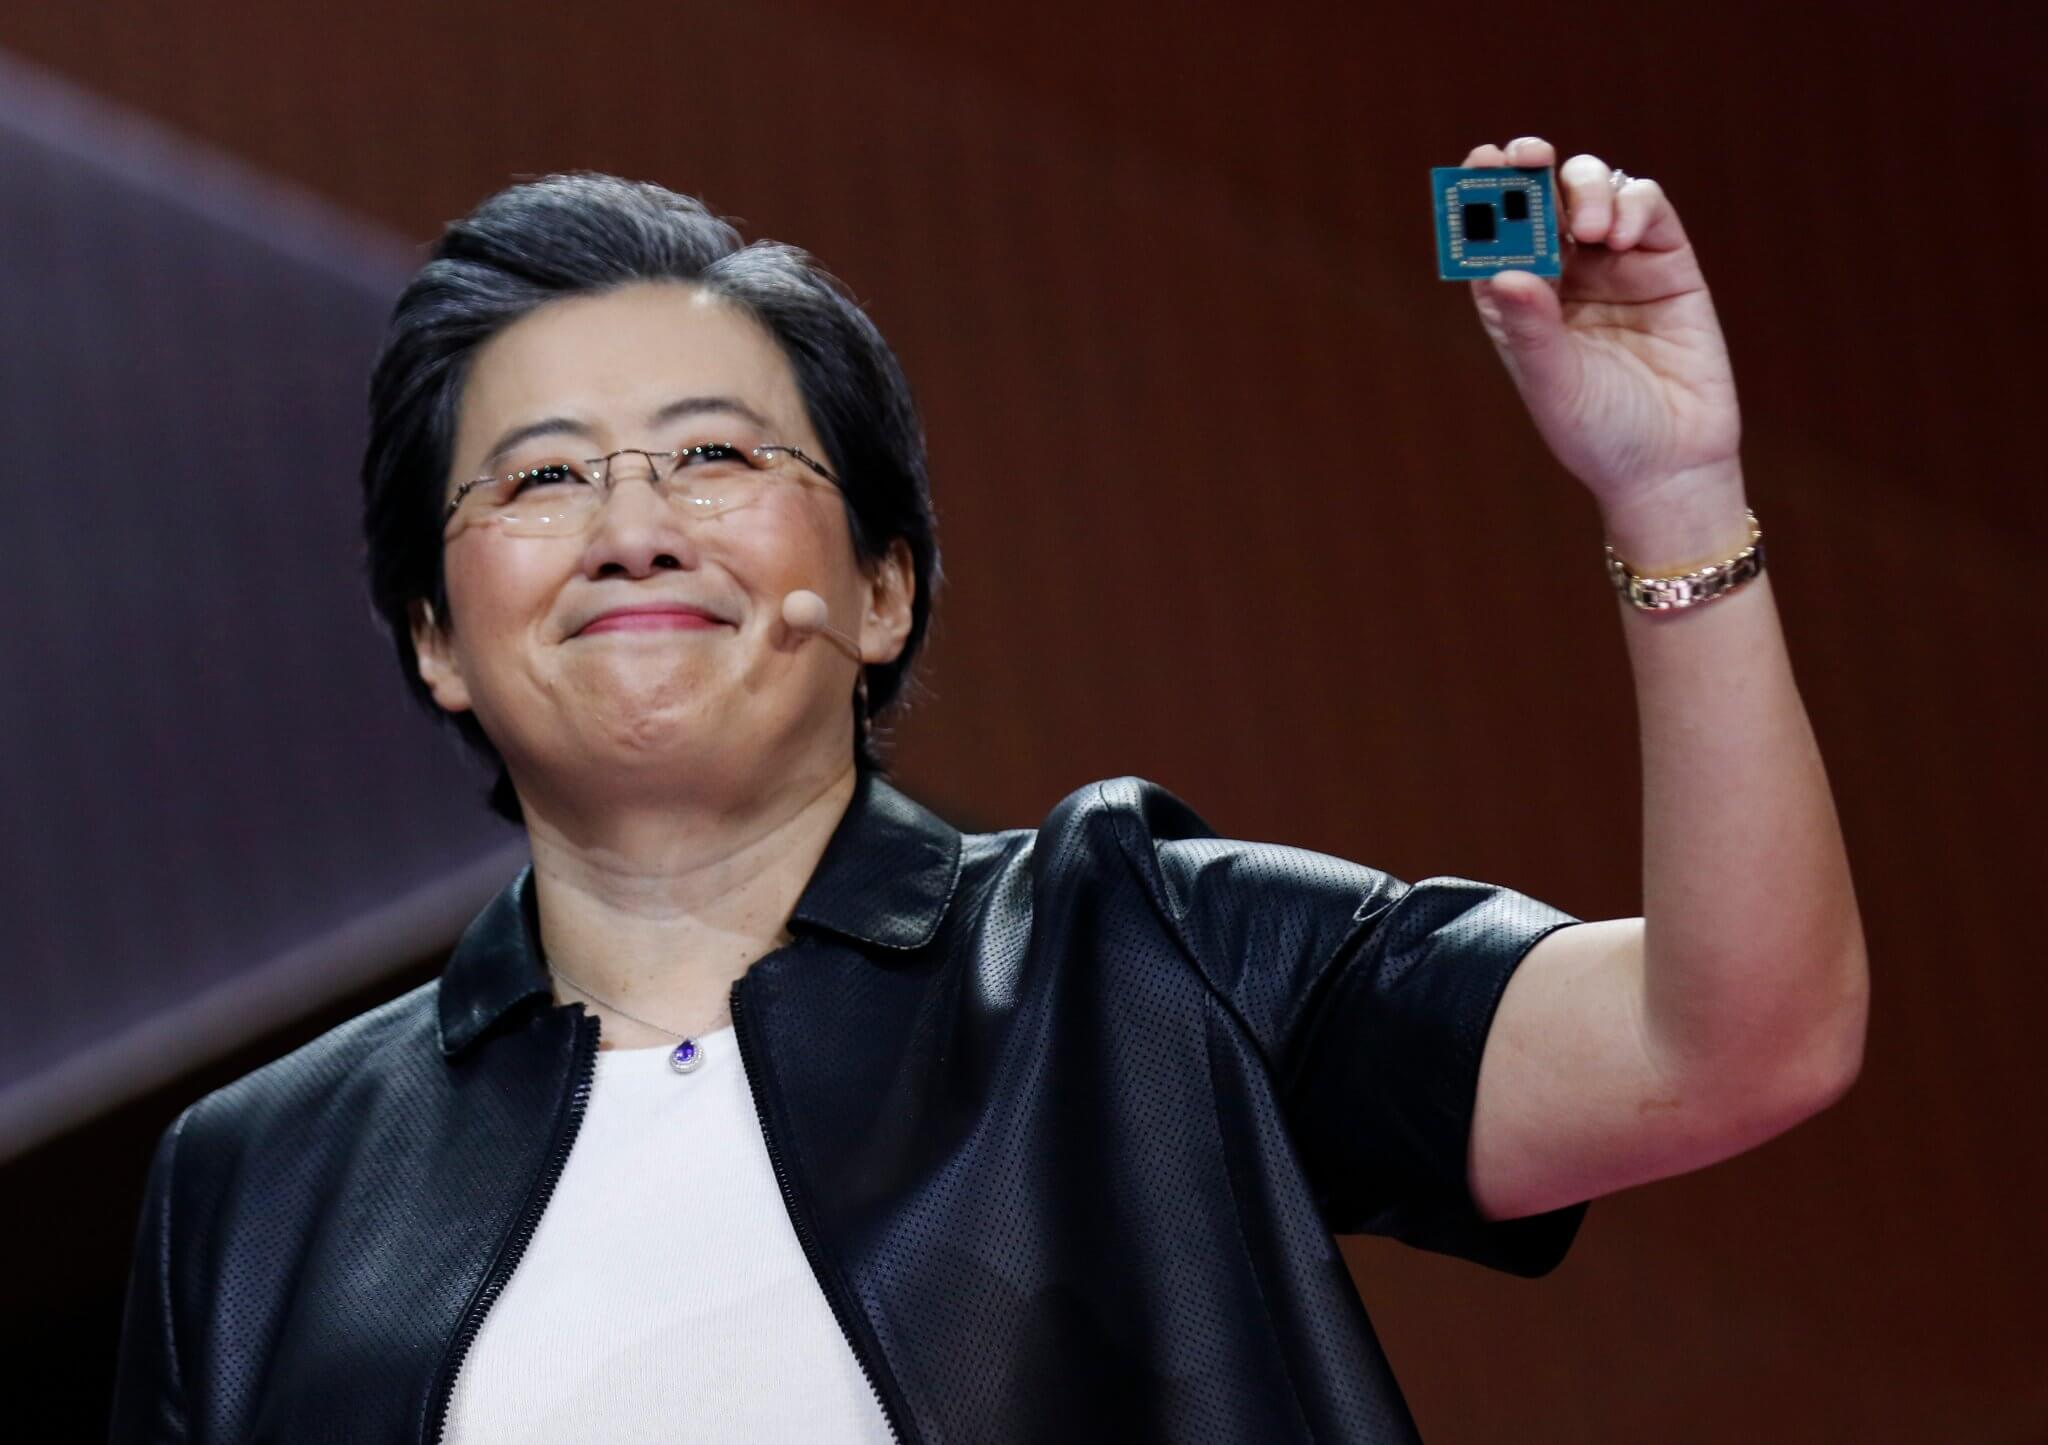 AMD teases third-generation Ryzen CPU during CES keynote